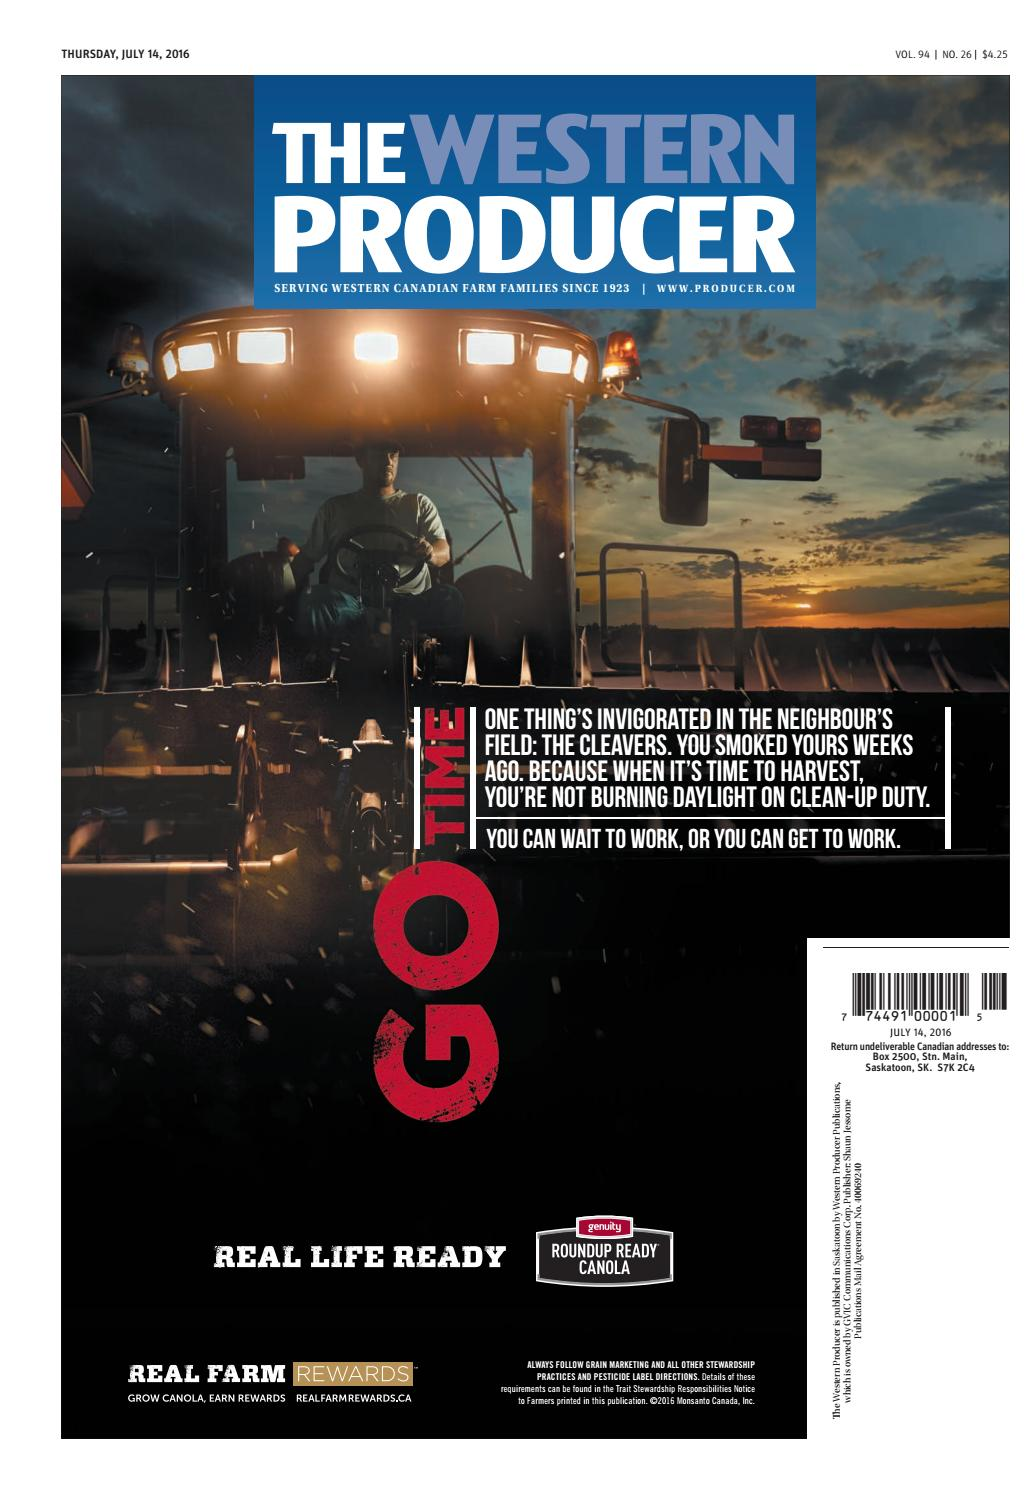 The western producer july 14, 2016 by The Western Producer - issuu